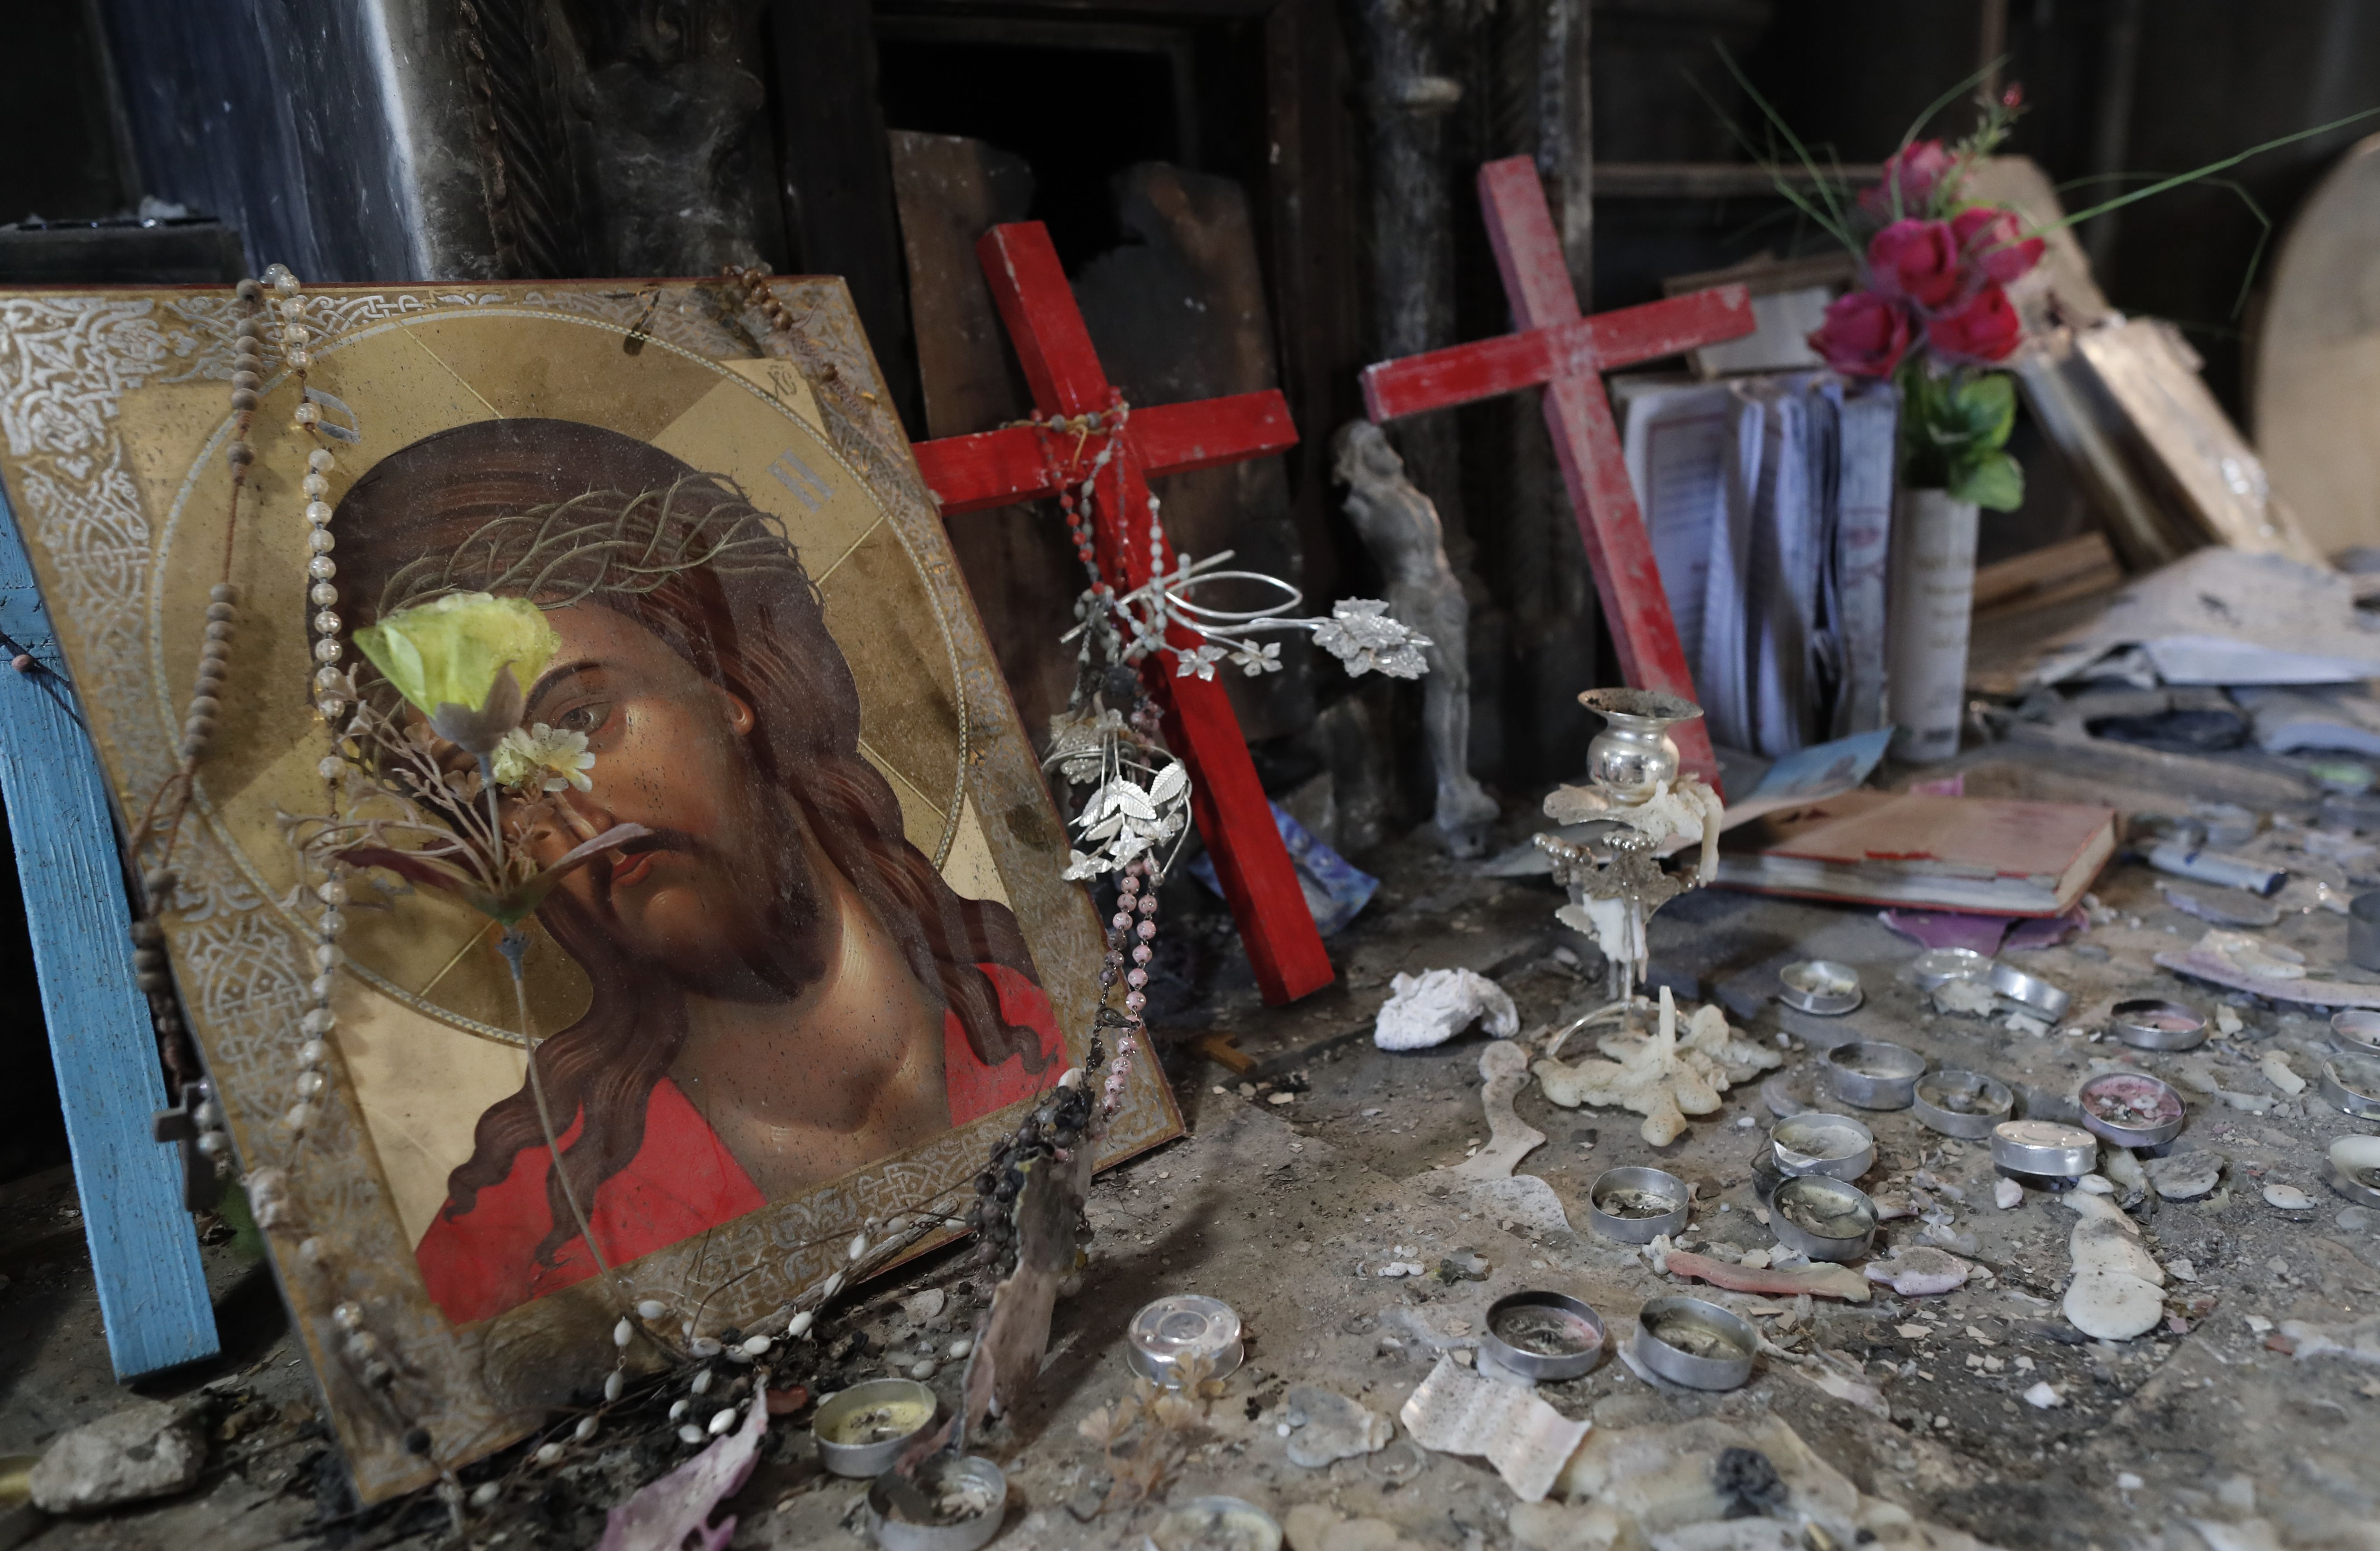 A portrait of Jesus Christ is seen inside the heavily damaged Church of the Immaculate Conception in the Christian town of Qaraqosh, also know as Hamdaniya, some 30 kms east of Mosul, on December 4, 2016, one month after Iraqi forces recaptured it from Islamic State (IS) group jihadists. / AFP / THOMAS COEX (Photo credit should read THOMAS COEX/AFP/Getty Images)